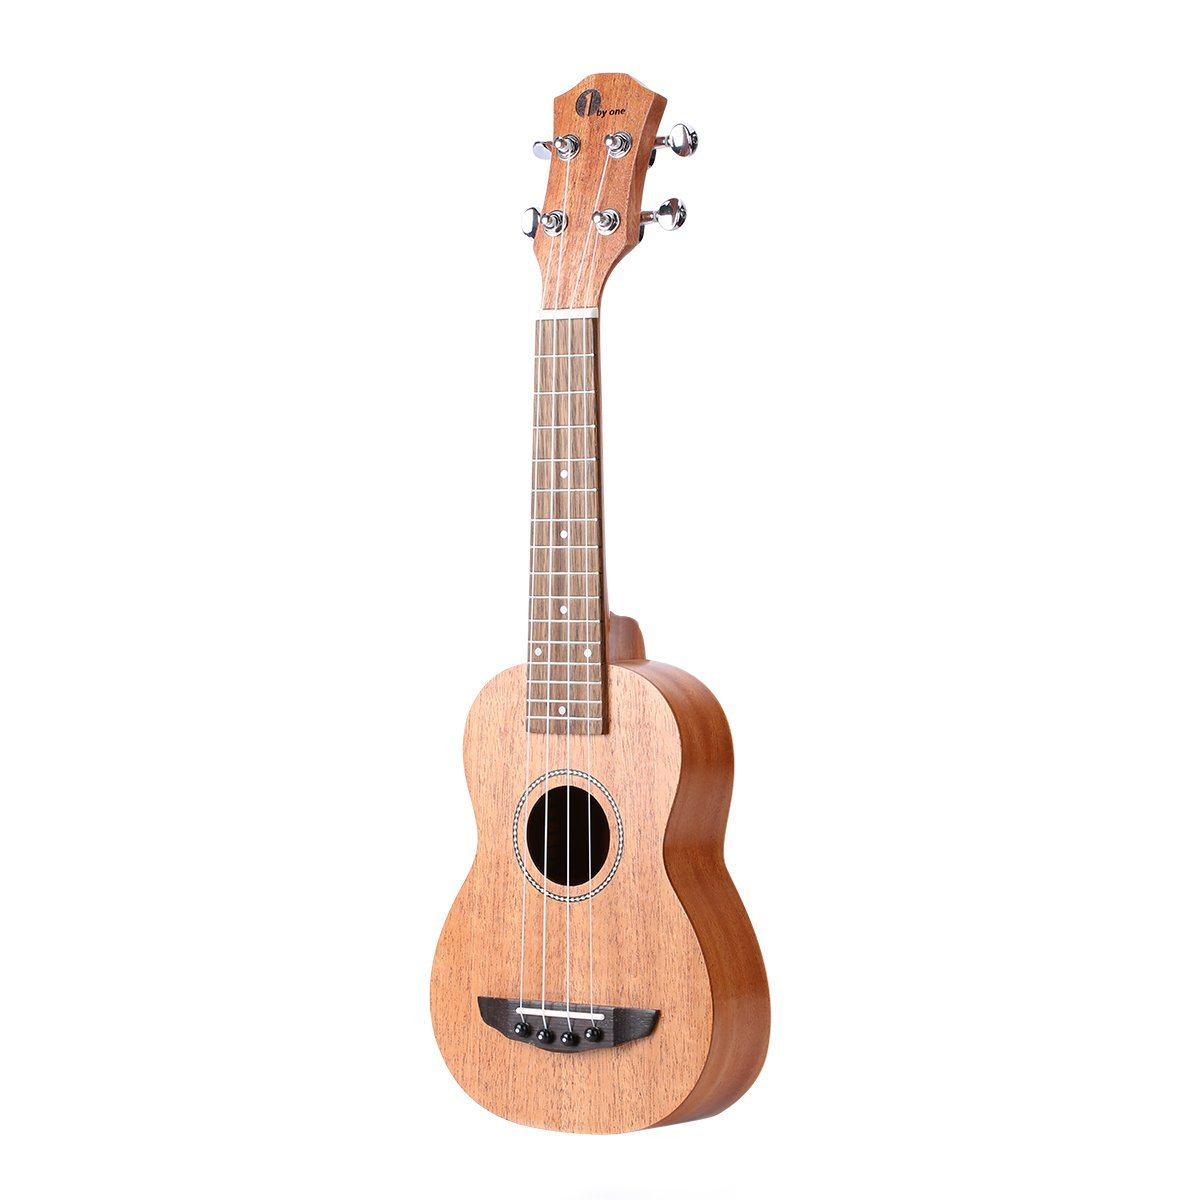 1byone 21'' Soprano Mahogany Ukulele with Included Digital Tuner, 3 Picks, Strap, and Black Gig Bag